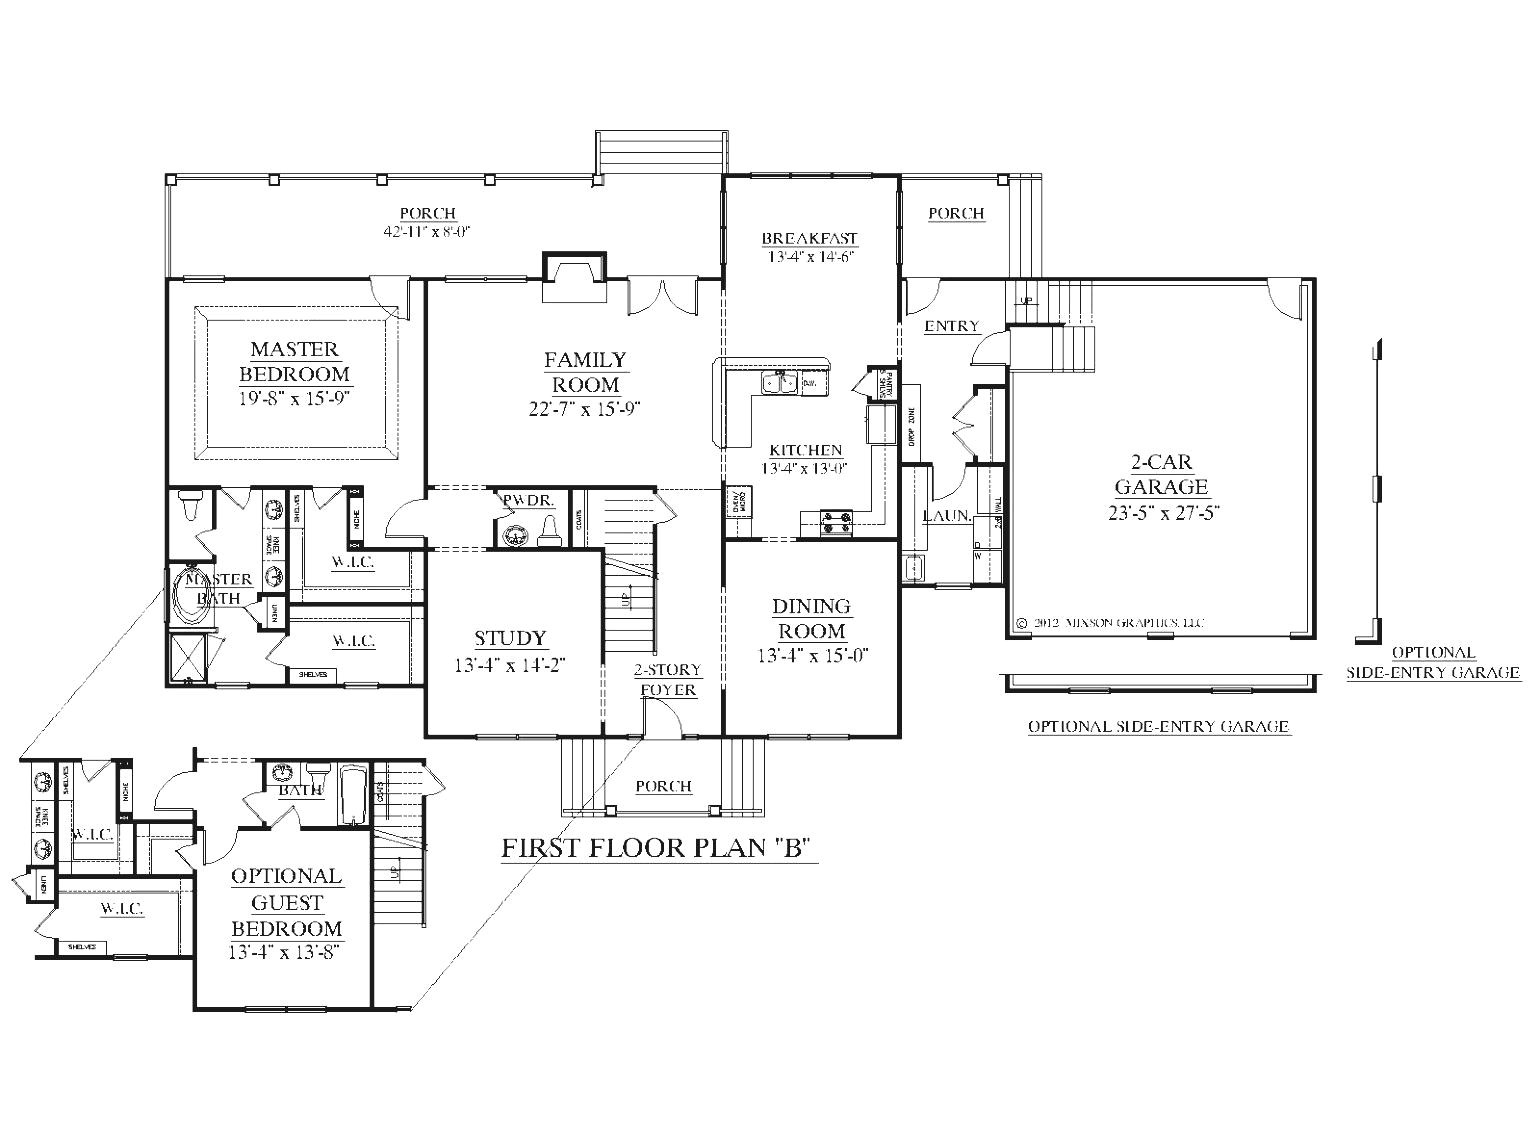 best design ideas for 1 bedroom guest house plans